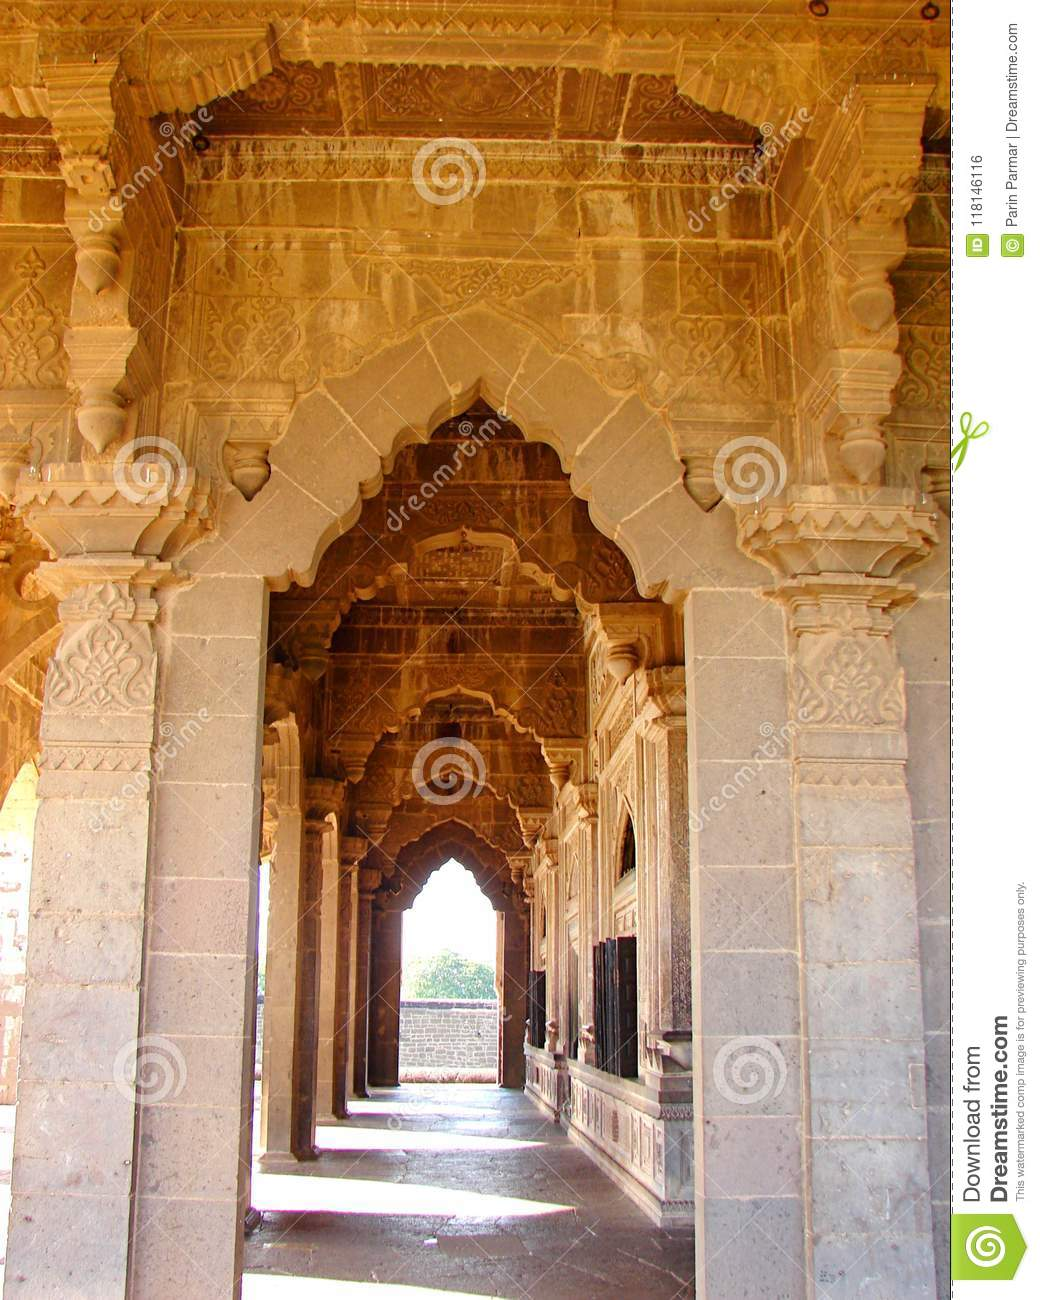 Corridor Made Of Decorative Arches And Patterned Pillars - Ancient